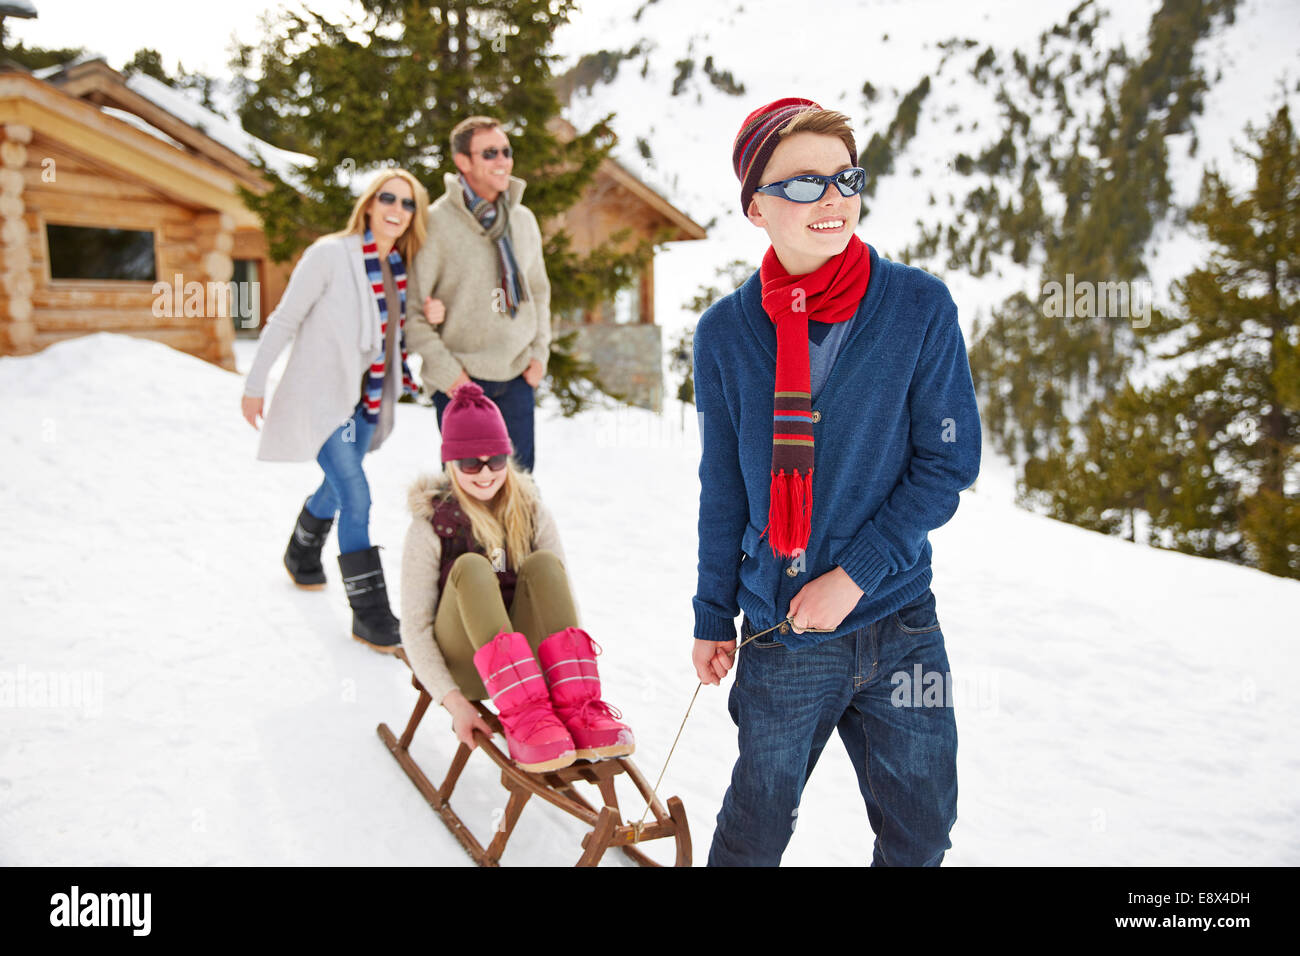 Brother pulling sister on sledge in snow - Stock Image